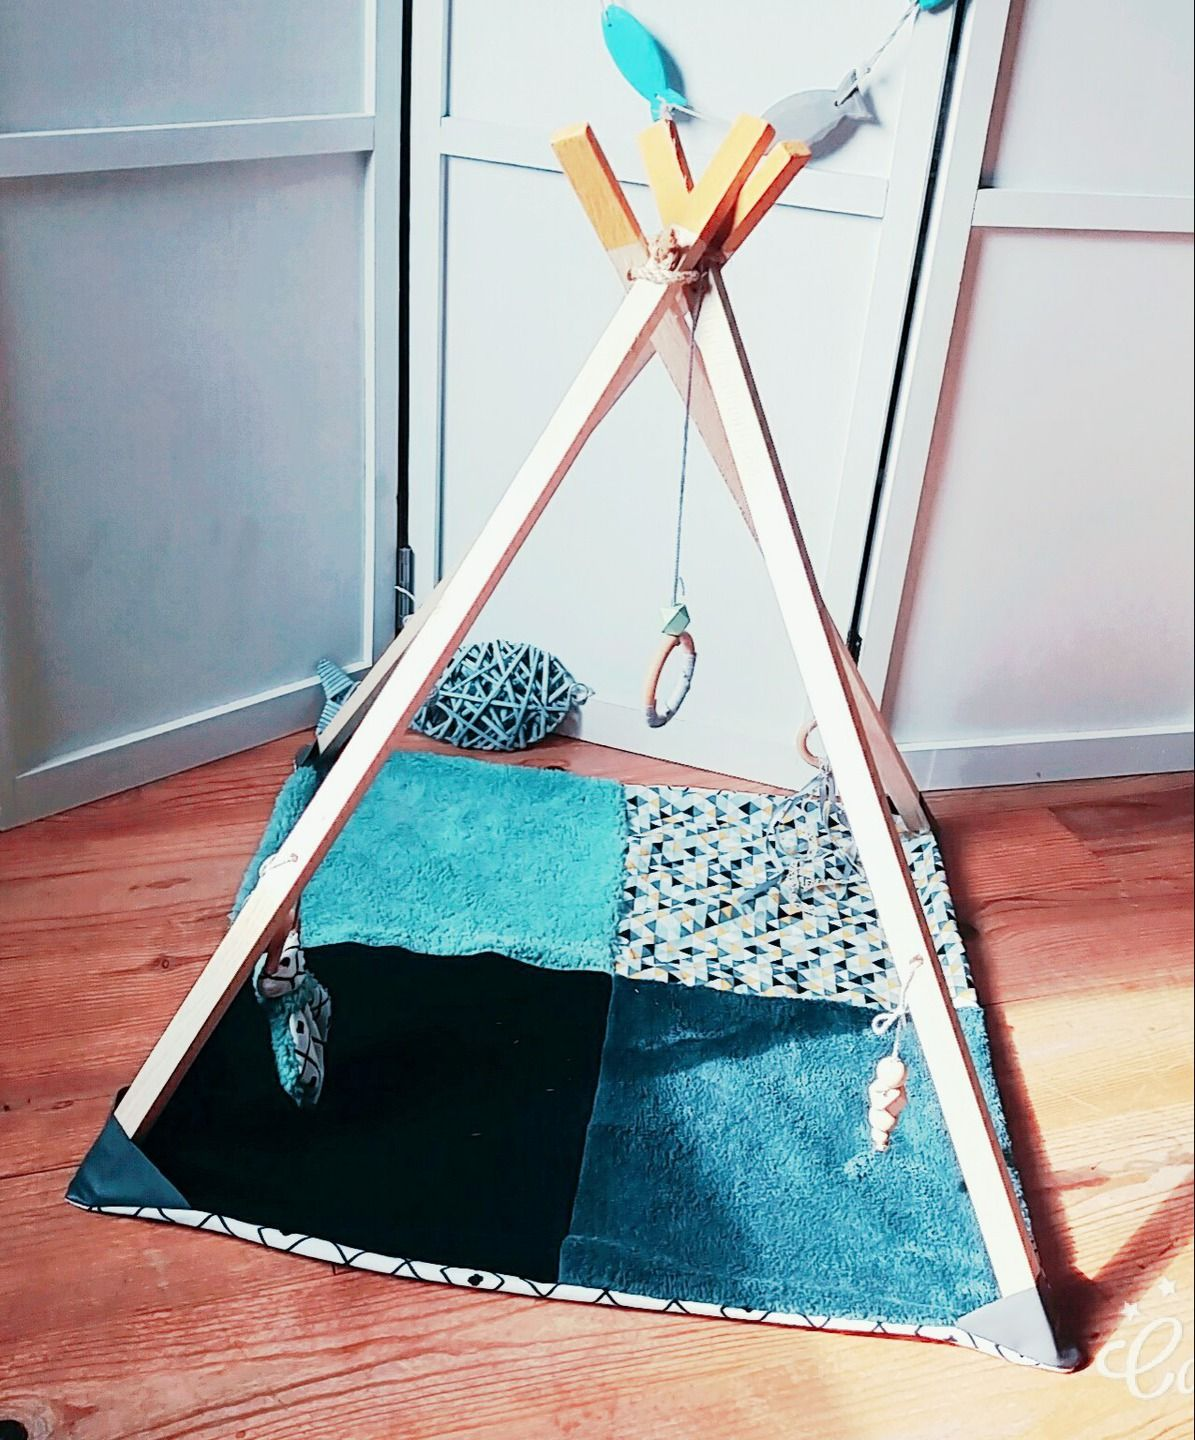 tapis d 39 veil pour b b en bois et tissu en forme de tipi jeux peluches doudous par. Black Bedroom Furniture Sets. Home Design Ideas